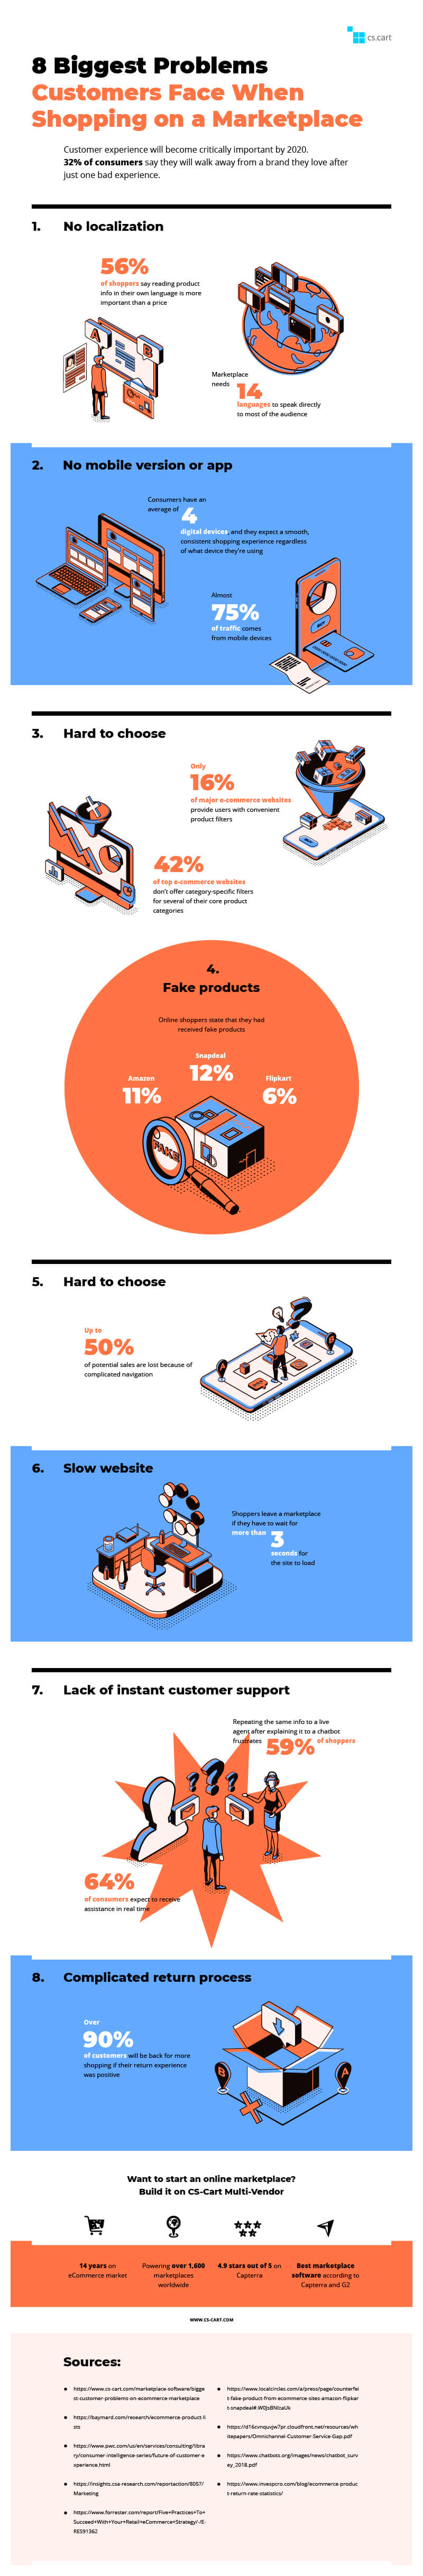 8-Biggest-Problems-Customers-Face-on-an-Online-Marketplace-infographic-plaza